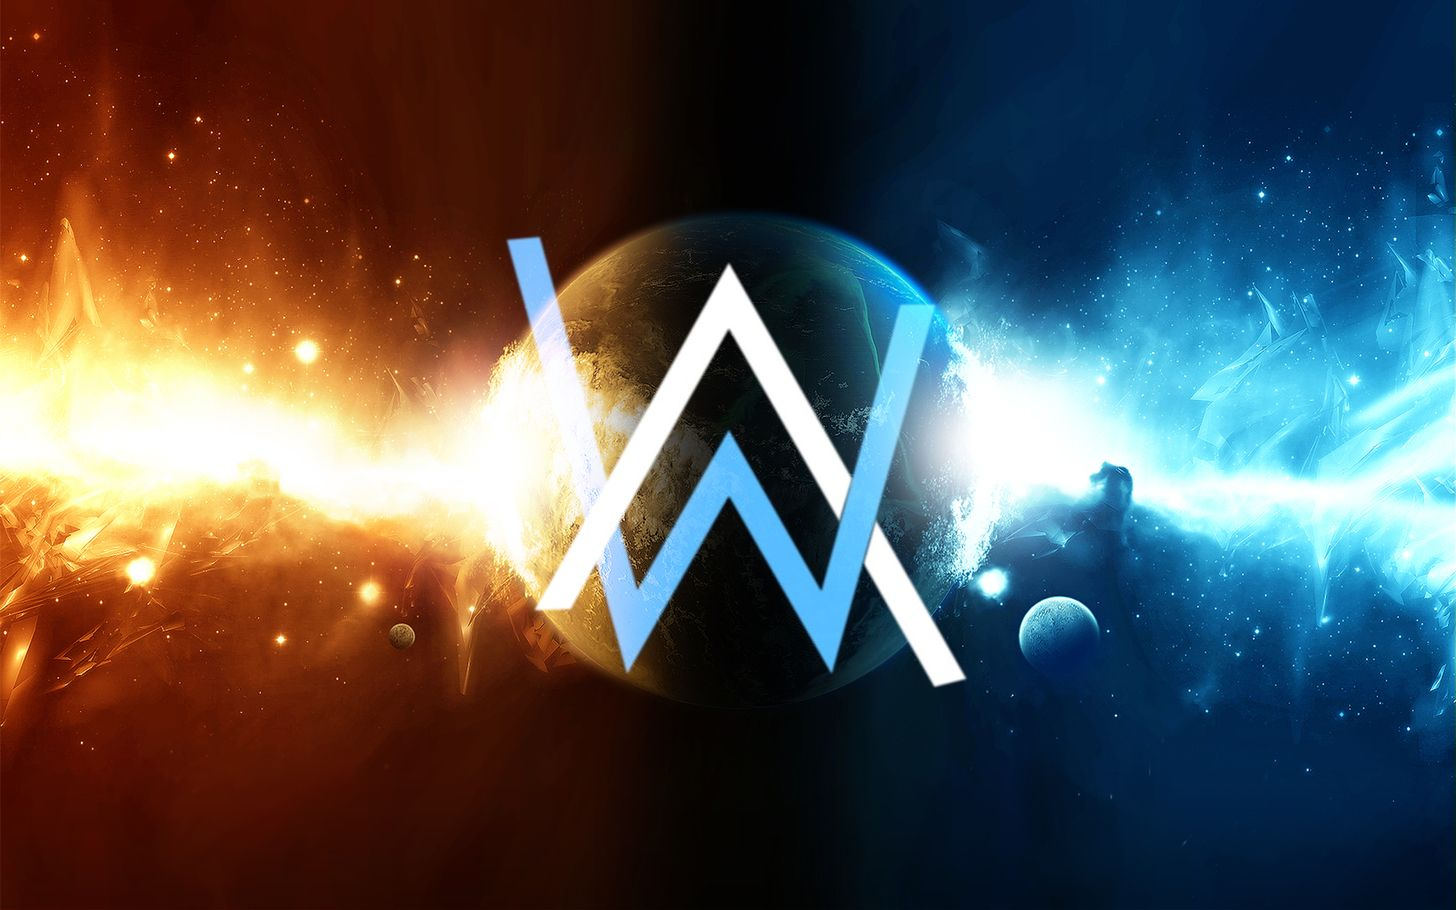 Alan Walker Wallpapers Edm Alan Walker Wallpaper Avicii